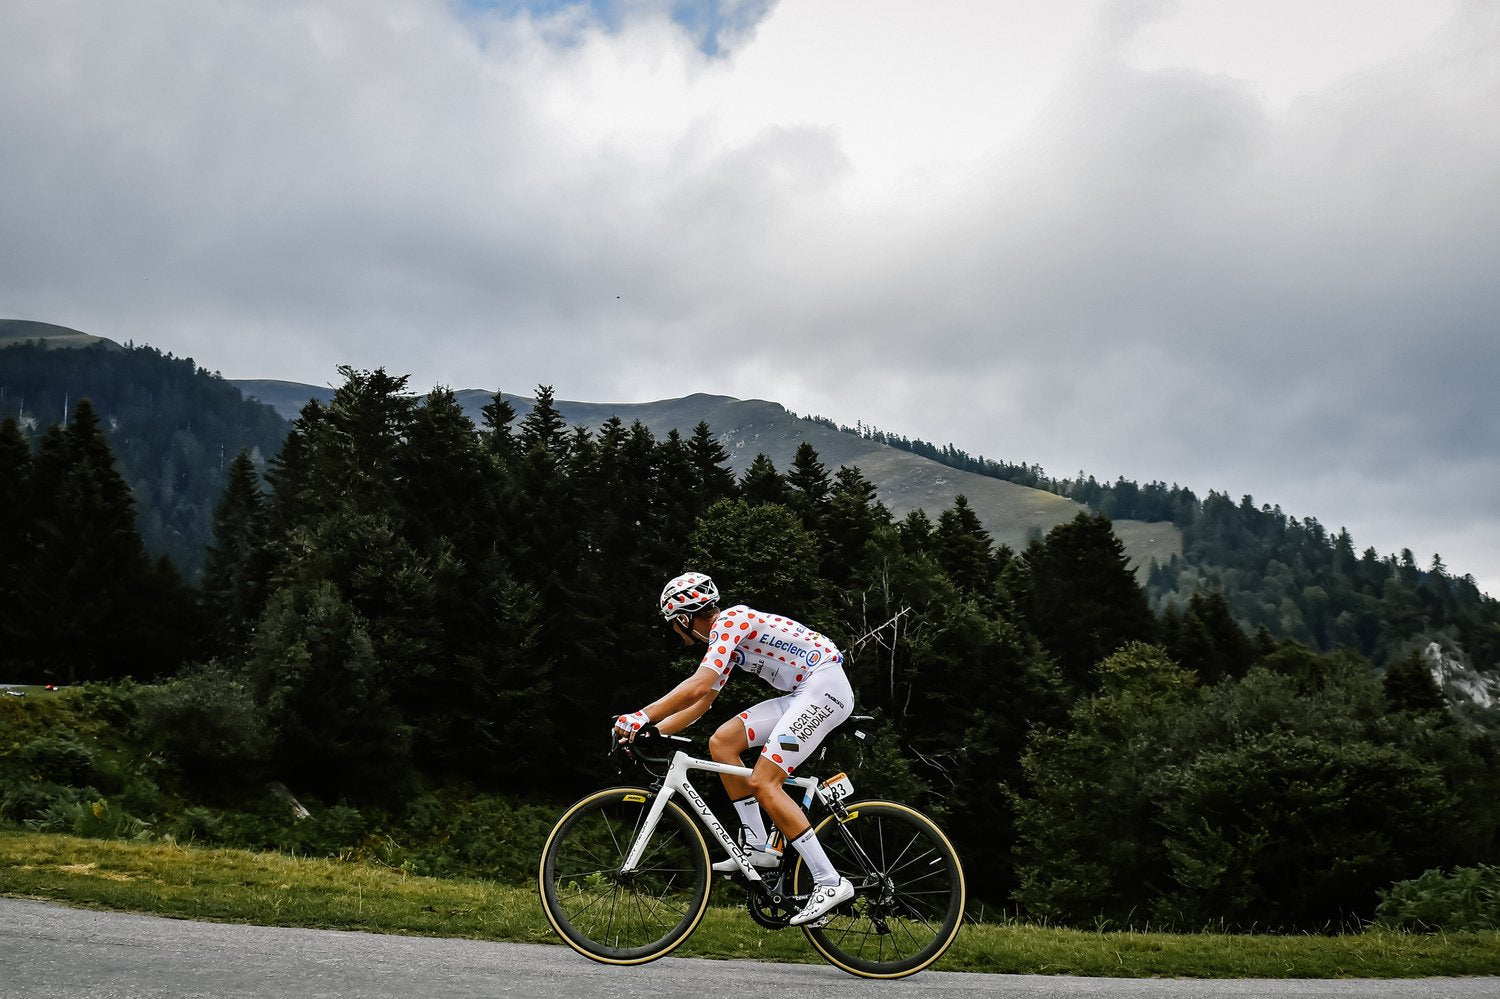 Tour de France King of the Mountains lightweight road bike components and parts